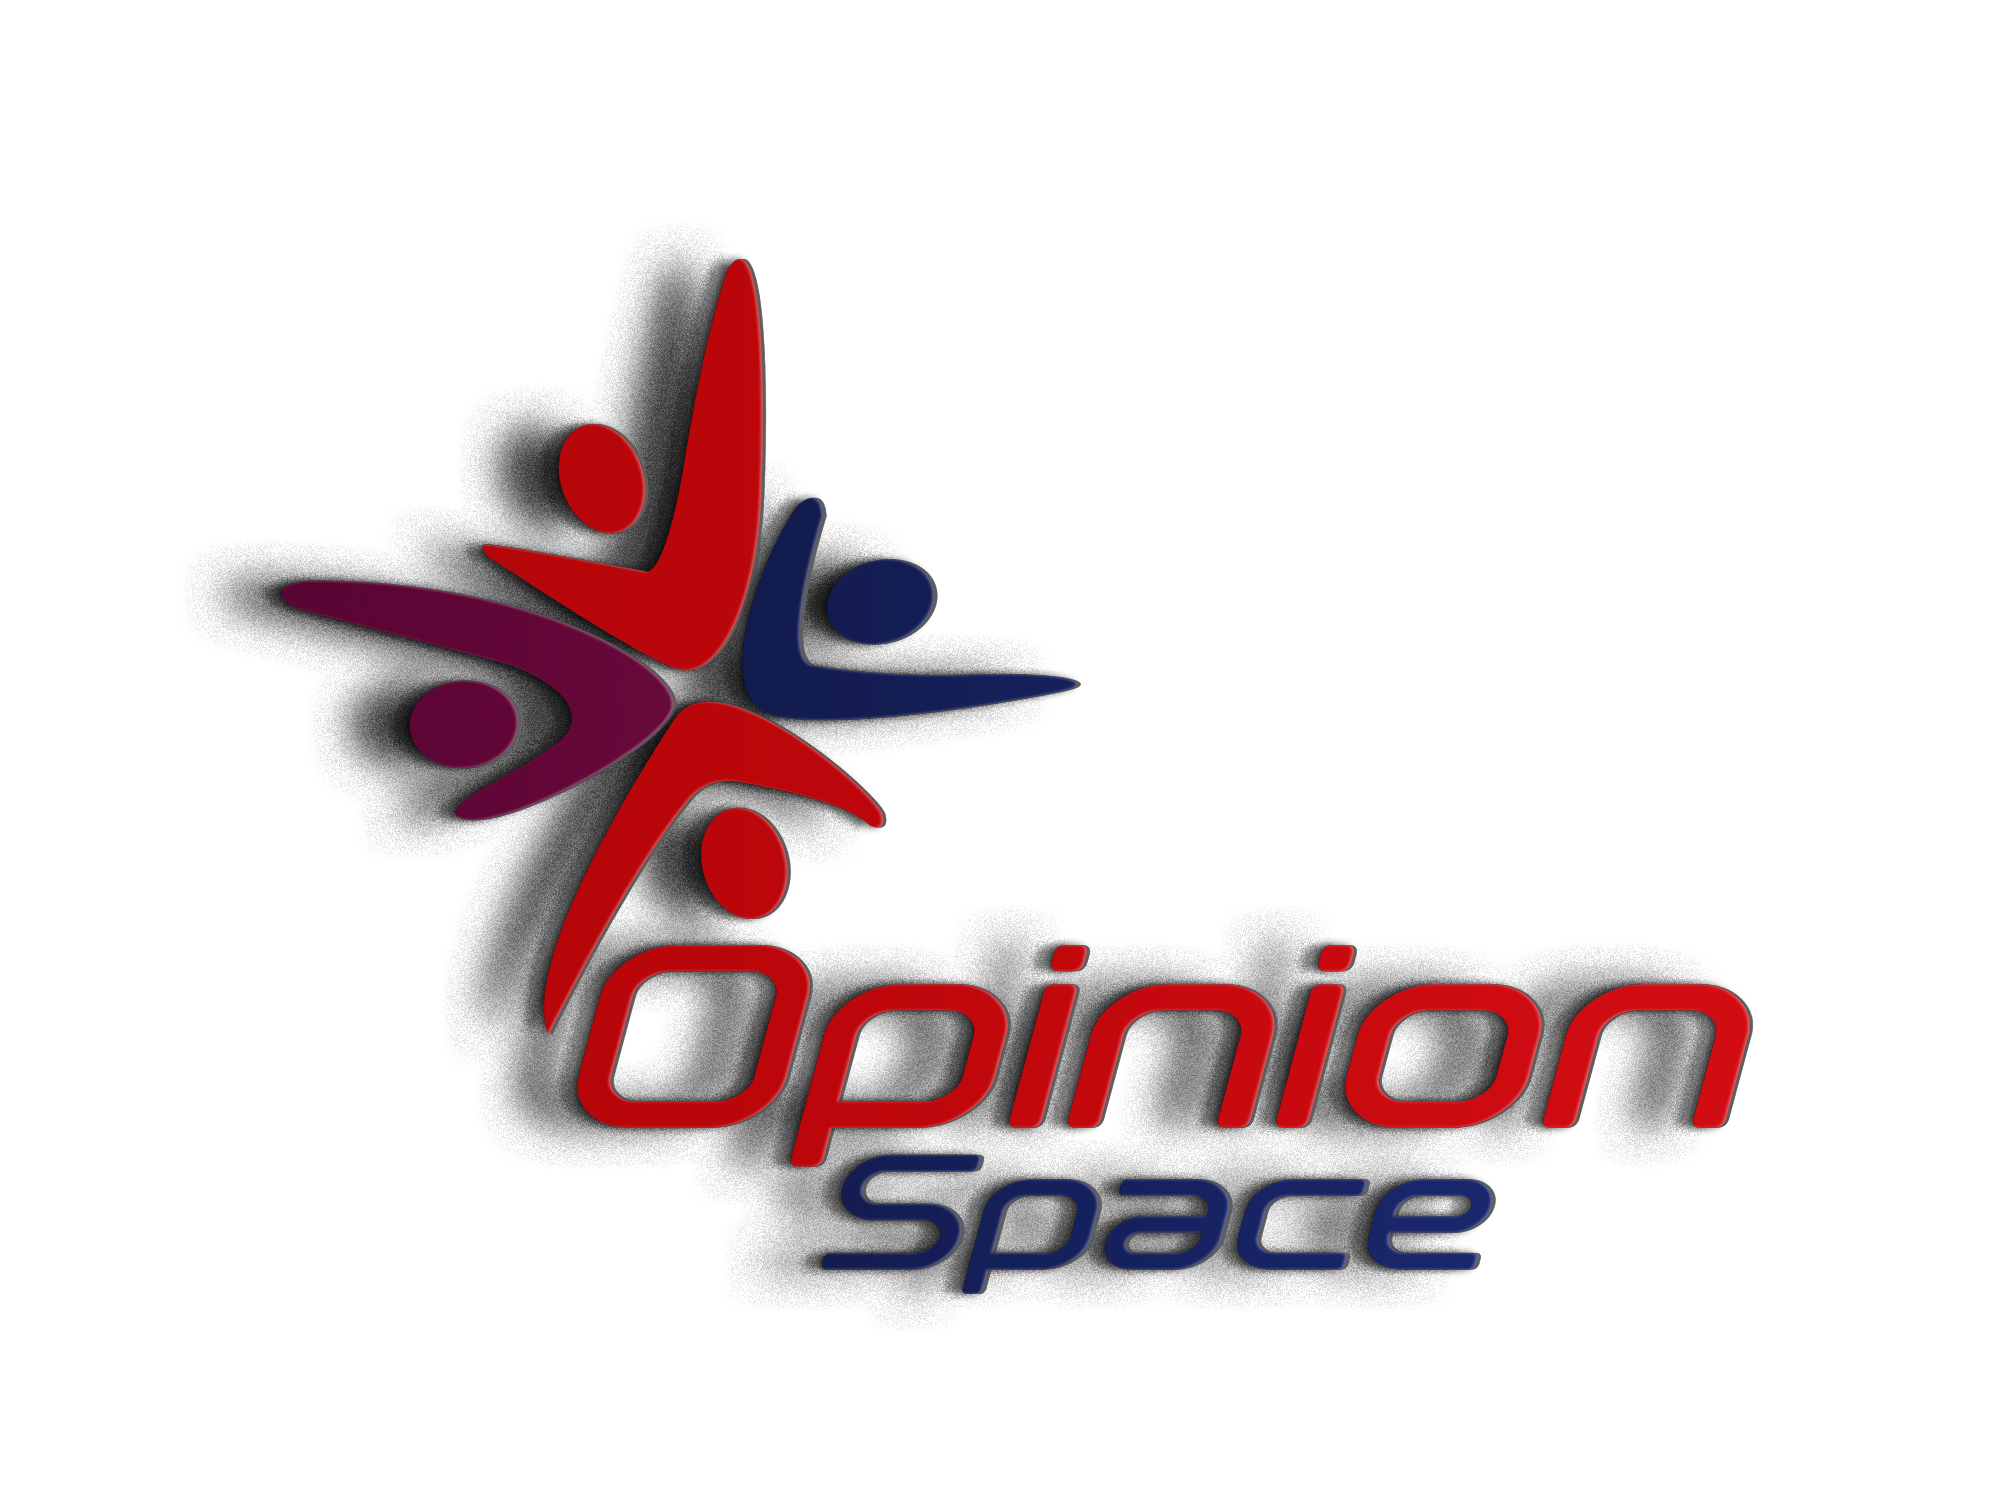 Opinion Space Ltd